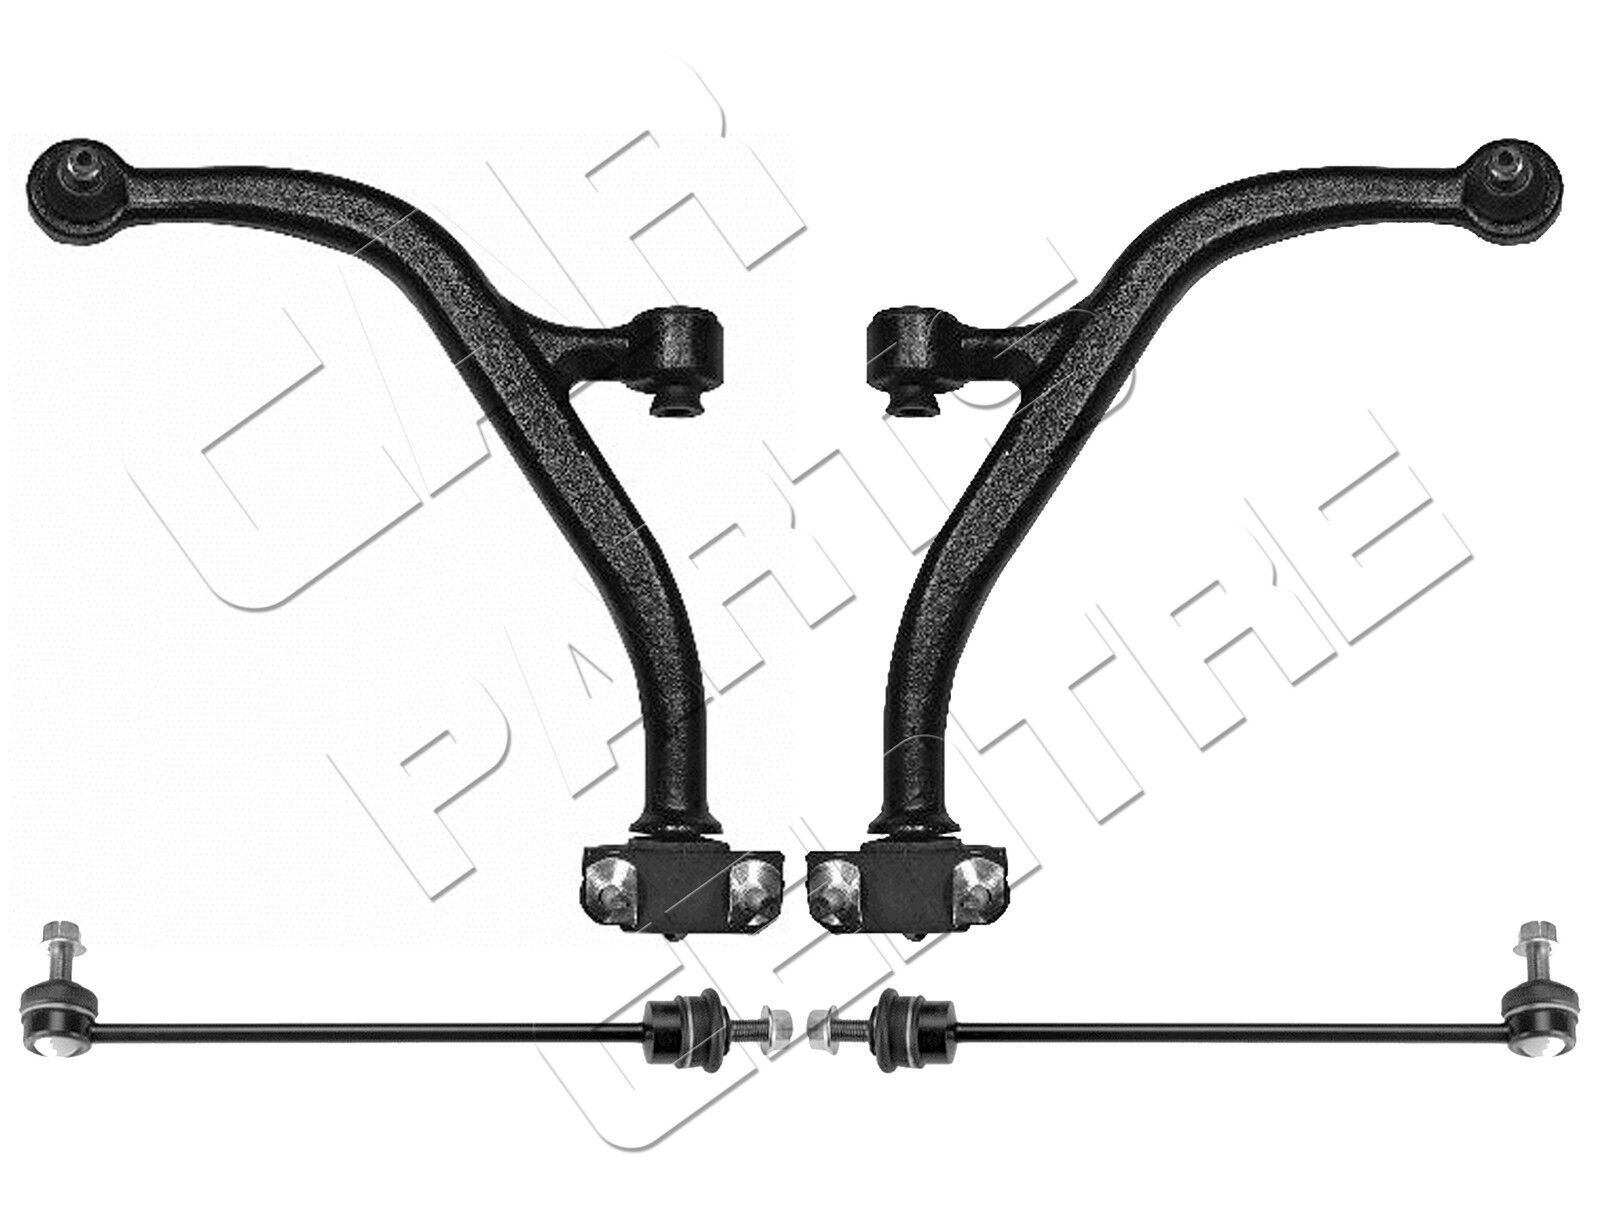 FOR CITREON SAXO VTR VTS LOWER WISHBONE CONTROL ARM ARMS